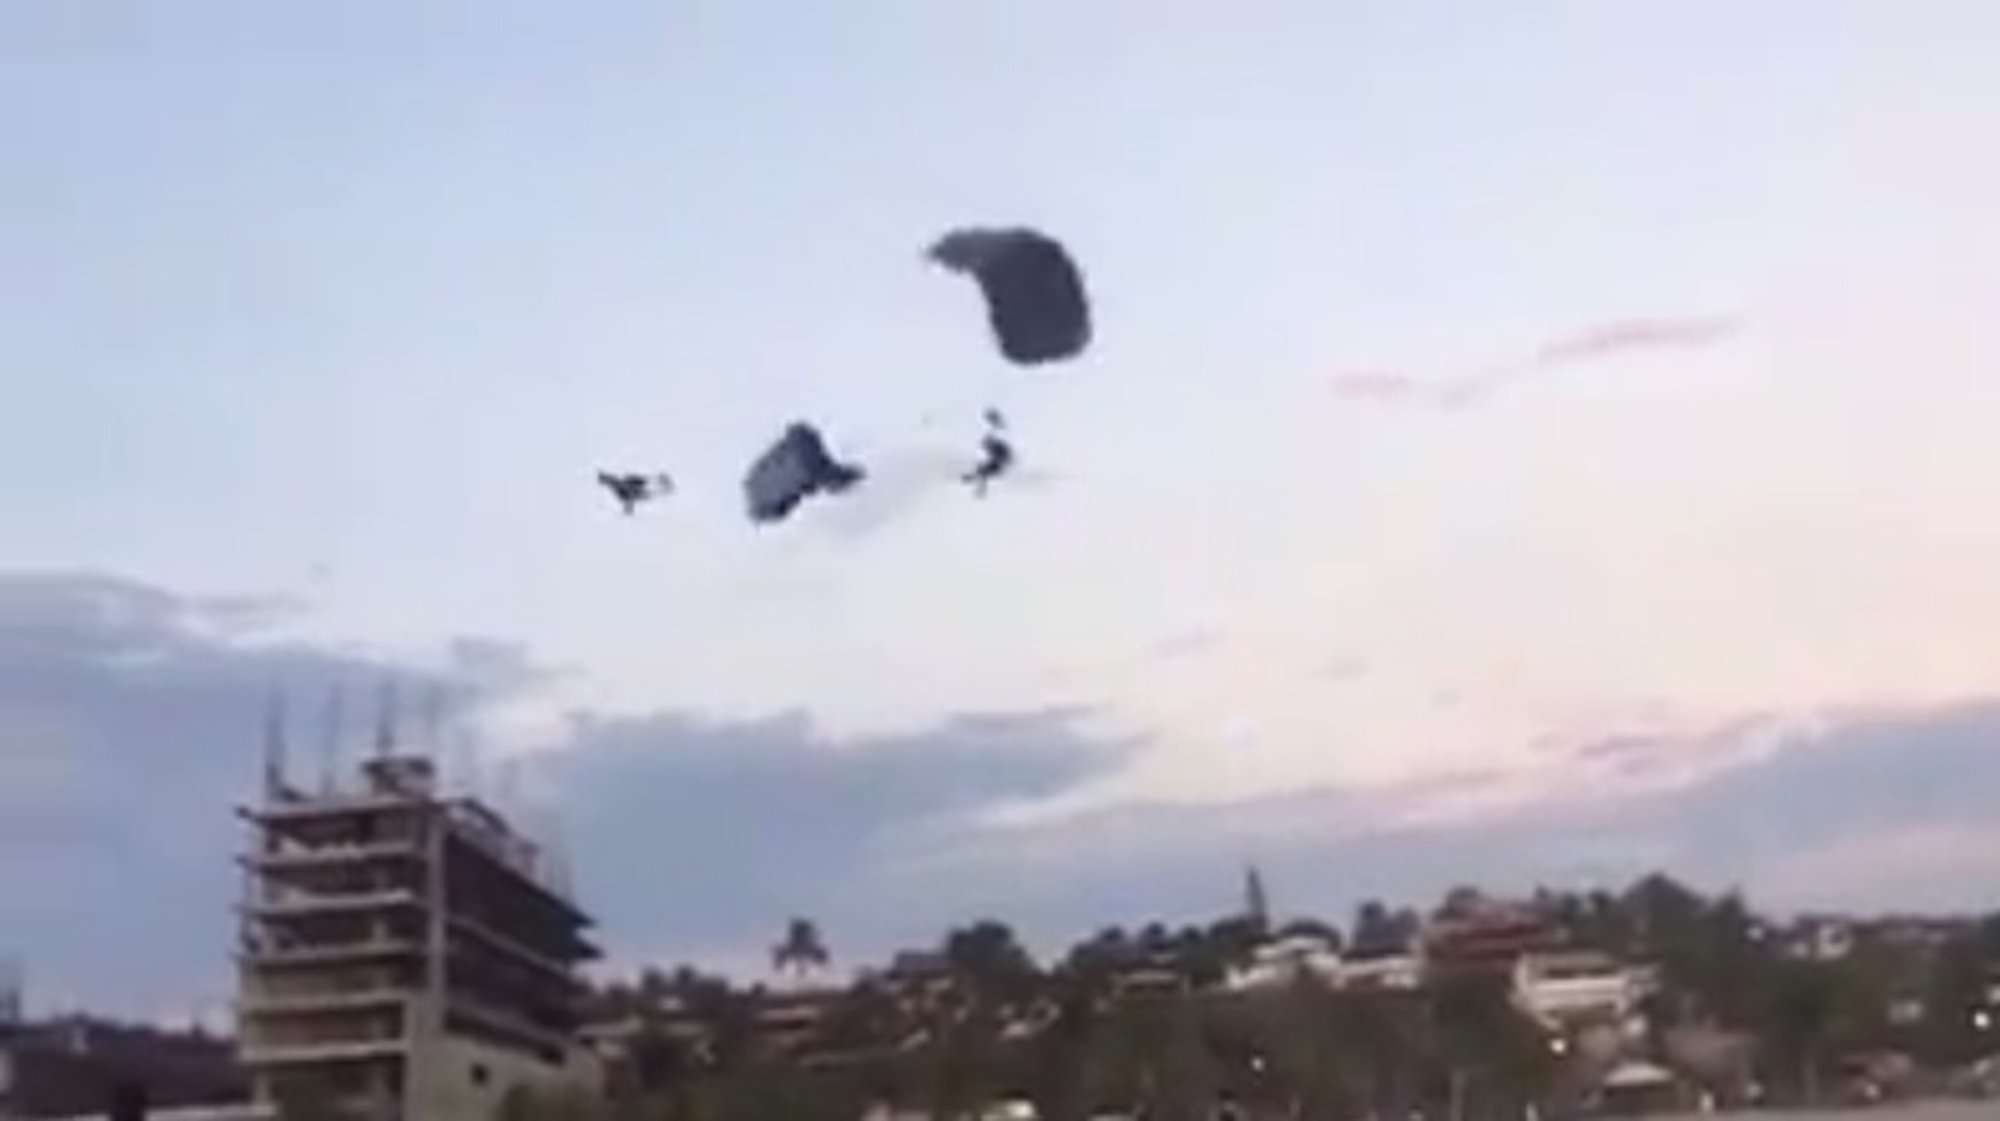 """Pic shows: The moment the two parachutists collide in mid-air. A tourist has died after two parachutists collided in mid-air and one was sent hurtling to the ground below. In video footage of the shocking accident, two parachutists are seen gliding through the air as they come in to land on a popular tourist beach in Puerto Escondido, a resort on Mexico???s Pacific coast in the state of Oaxaca. The 43-year-old woman, identified as Ursula, is seen gliding across the screen from right to left. Slightly above her, coming in from the opposite side, is another parachutist who accidentally crashes into the woman???s parachute. The impact flattens the woman???s parachute, making her drop from the sky like a stone. The parachute did not have enough time to right itself and the middle-aged tourist from Mexico City hit the beach below. According to local media, the woman was rushed to a medical centre where she later succumbed to her injuries. The victim???s family has accused the company Skydive Puerto Escondido of lack of safety and for disassociating itself from the accident. Family members said that tourists """"have to sign a non-liability disclosure that removes the company from all responsibility"""". The video has been widely circulated by social and local media and netizens were shocked by the footage. ???AlejandroMeza??? said: """"It is incredible that these services do not have safety procedures in place to prevent this kind of thing from happening. """"Even if they sign a non-liability form, the authorities should investigate the company responsible, because it is obvious that these tourists had no control over what they were doing."""" (ends)"""